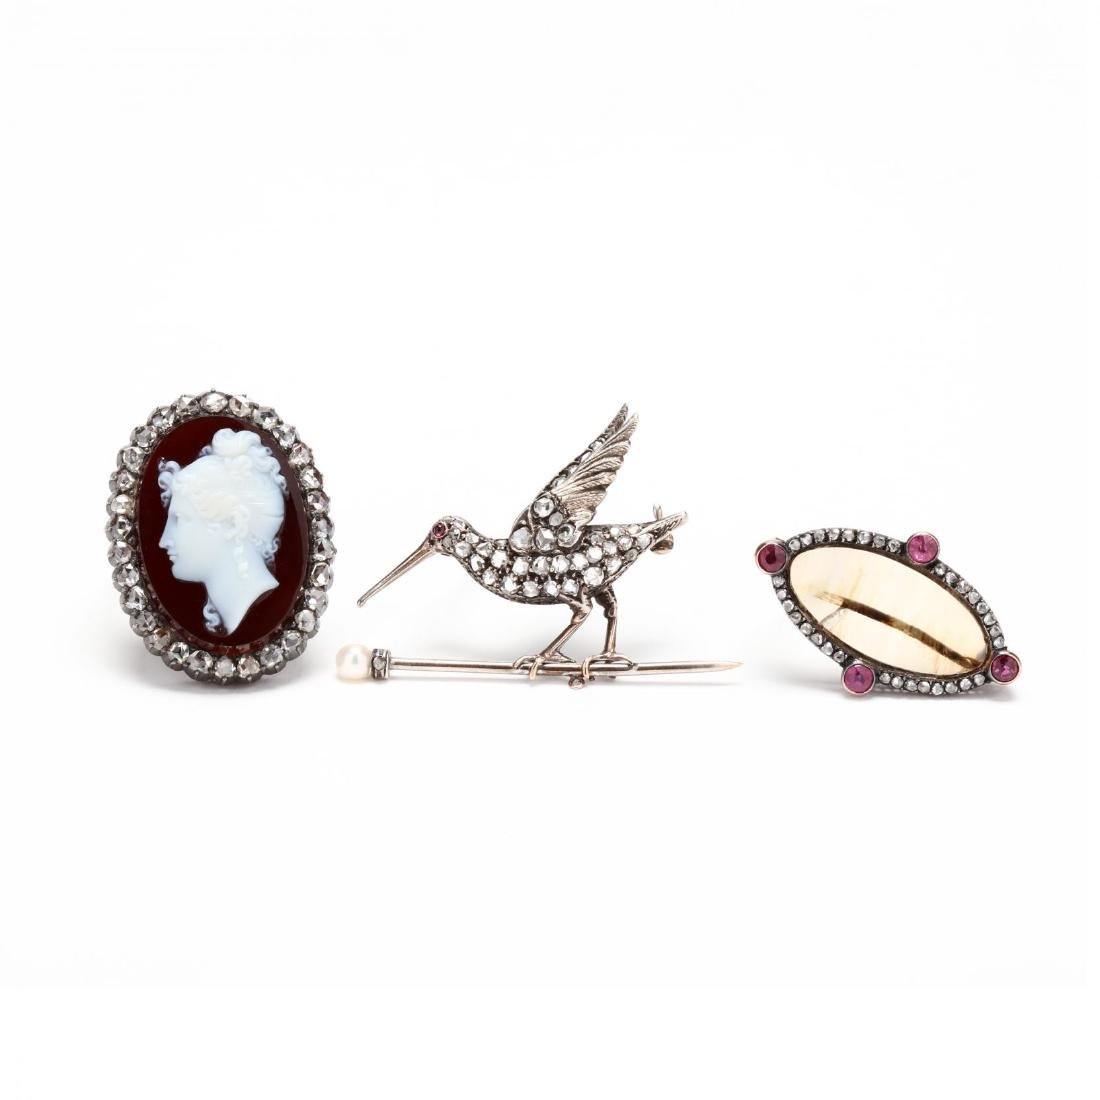 Three Antique Diamond and Gemstone Brooches